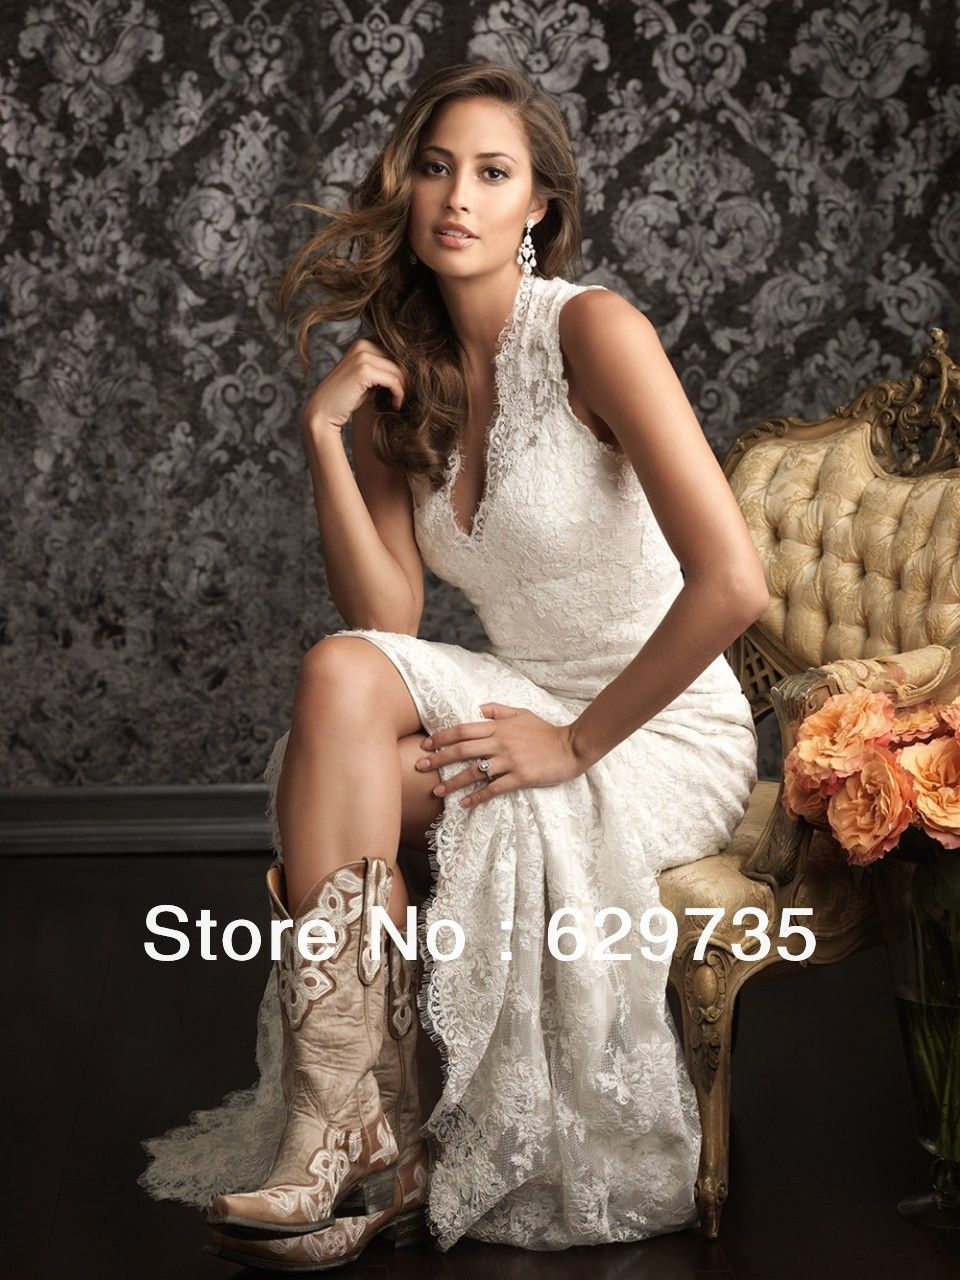 Cheap lace wedding dresses under 100 under 100 2013 knee length cheap lace wedding dresses under 100 under 100 2013 knee length junior bridesmaid dresses free ombrellifo Image collections